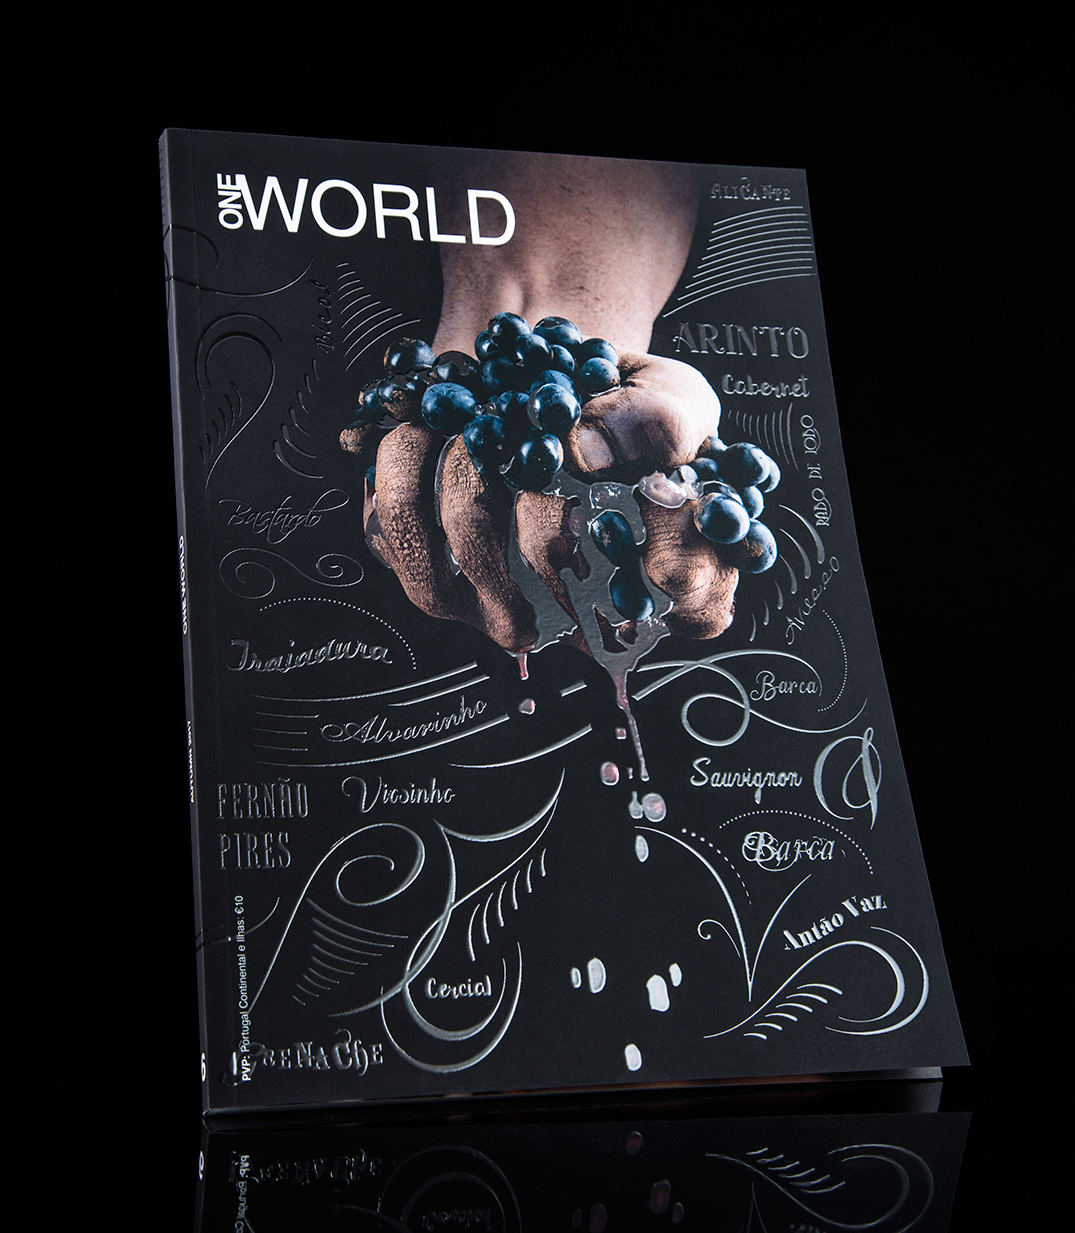 M&A Creative Agency es portada de la revista One World